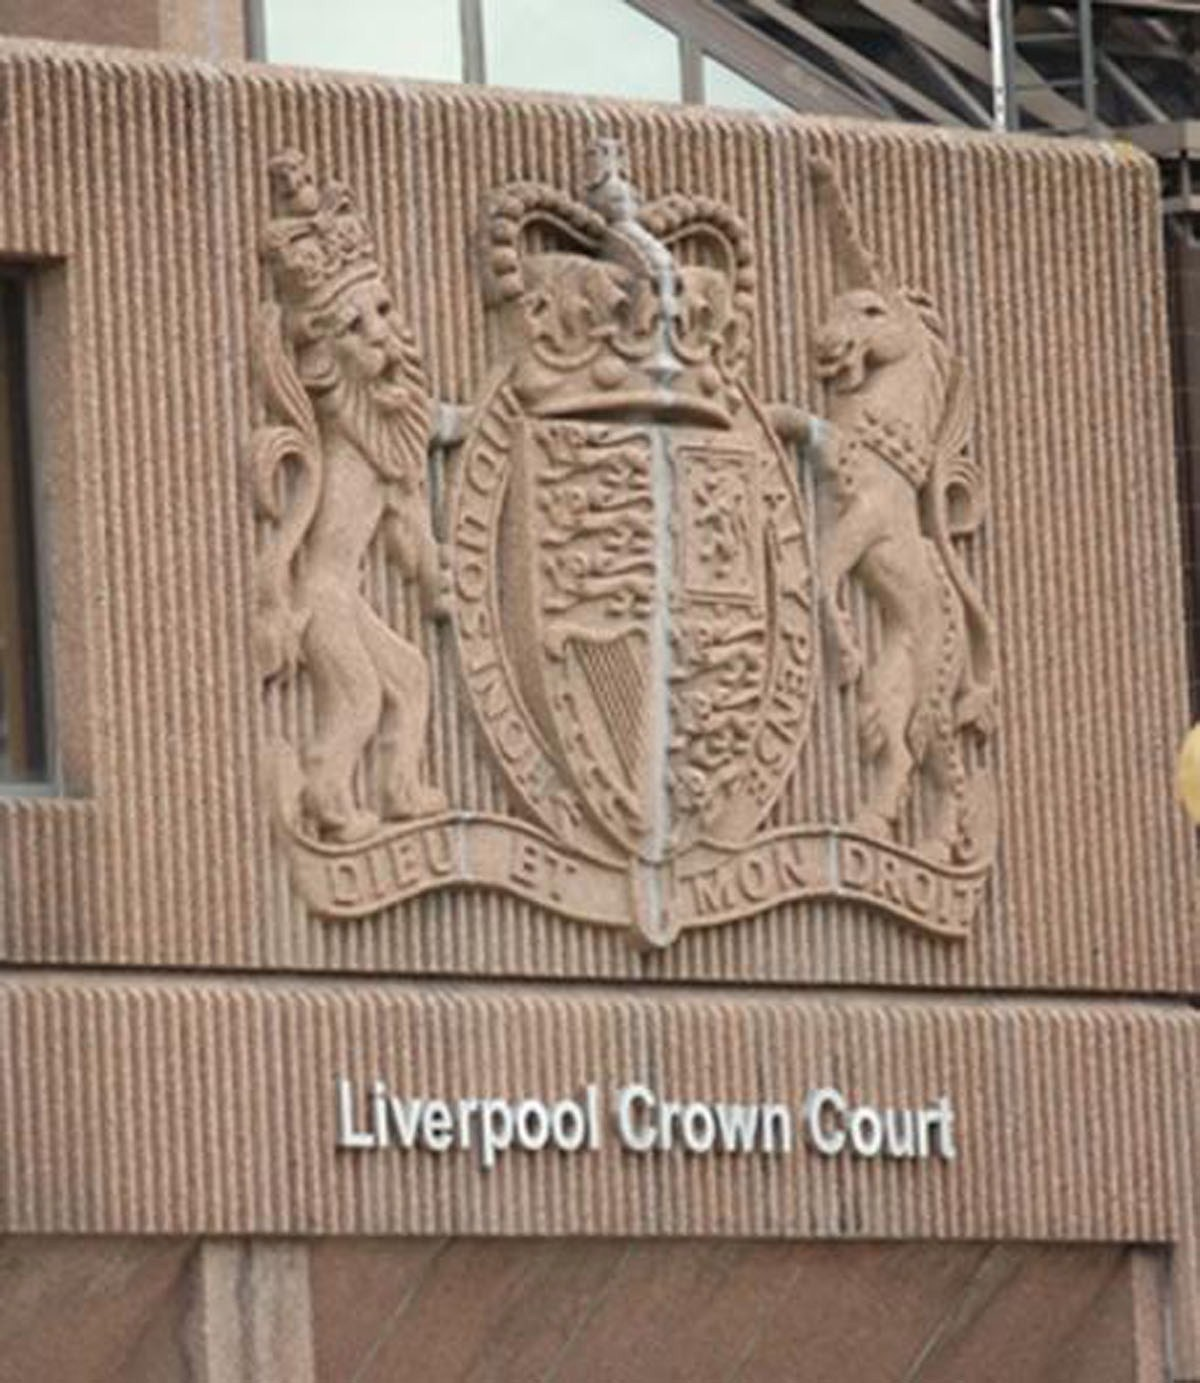 Benefit cheat jailed after claiming more than £100,000